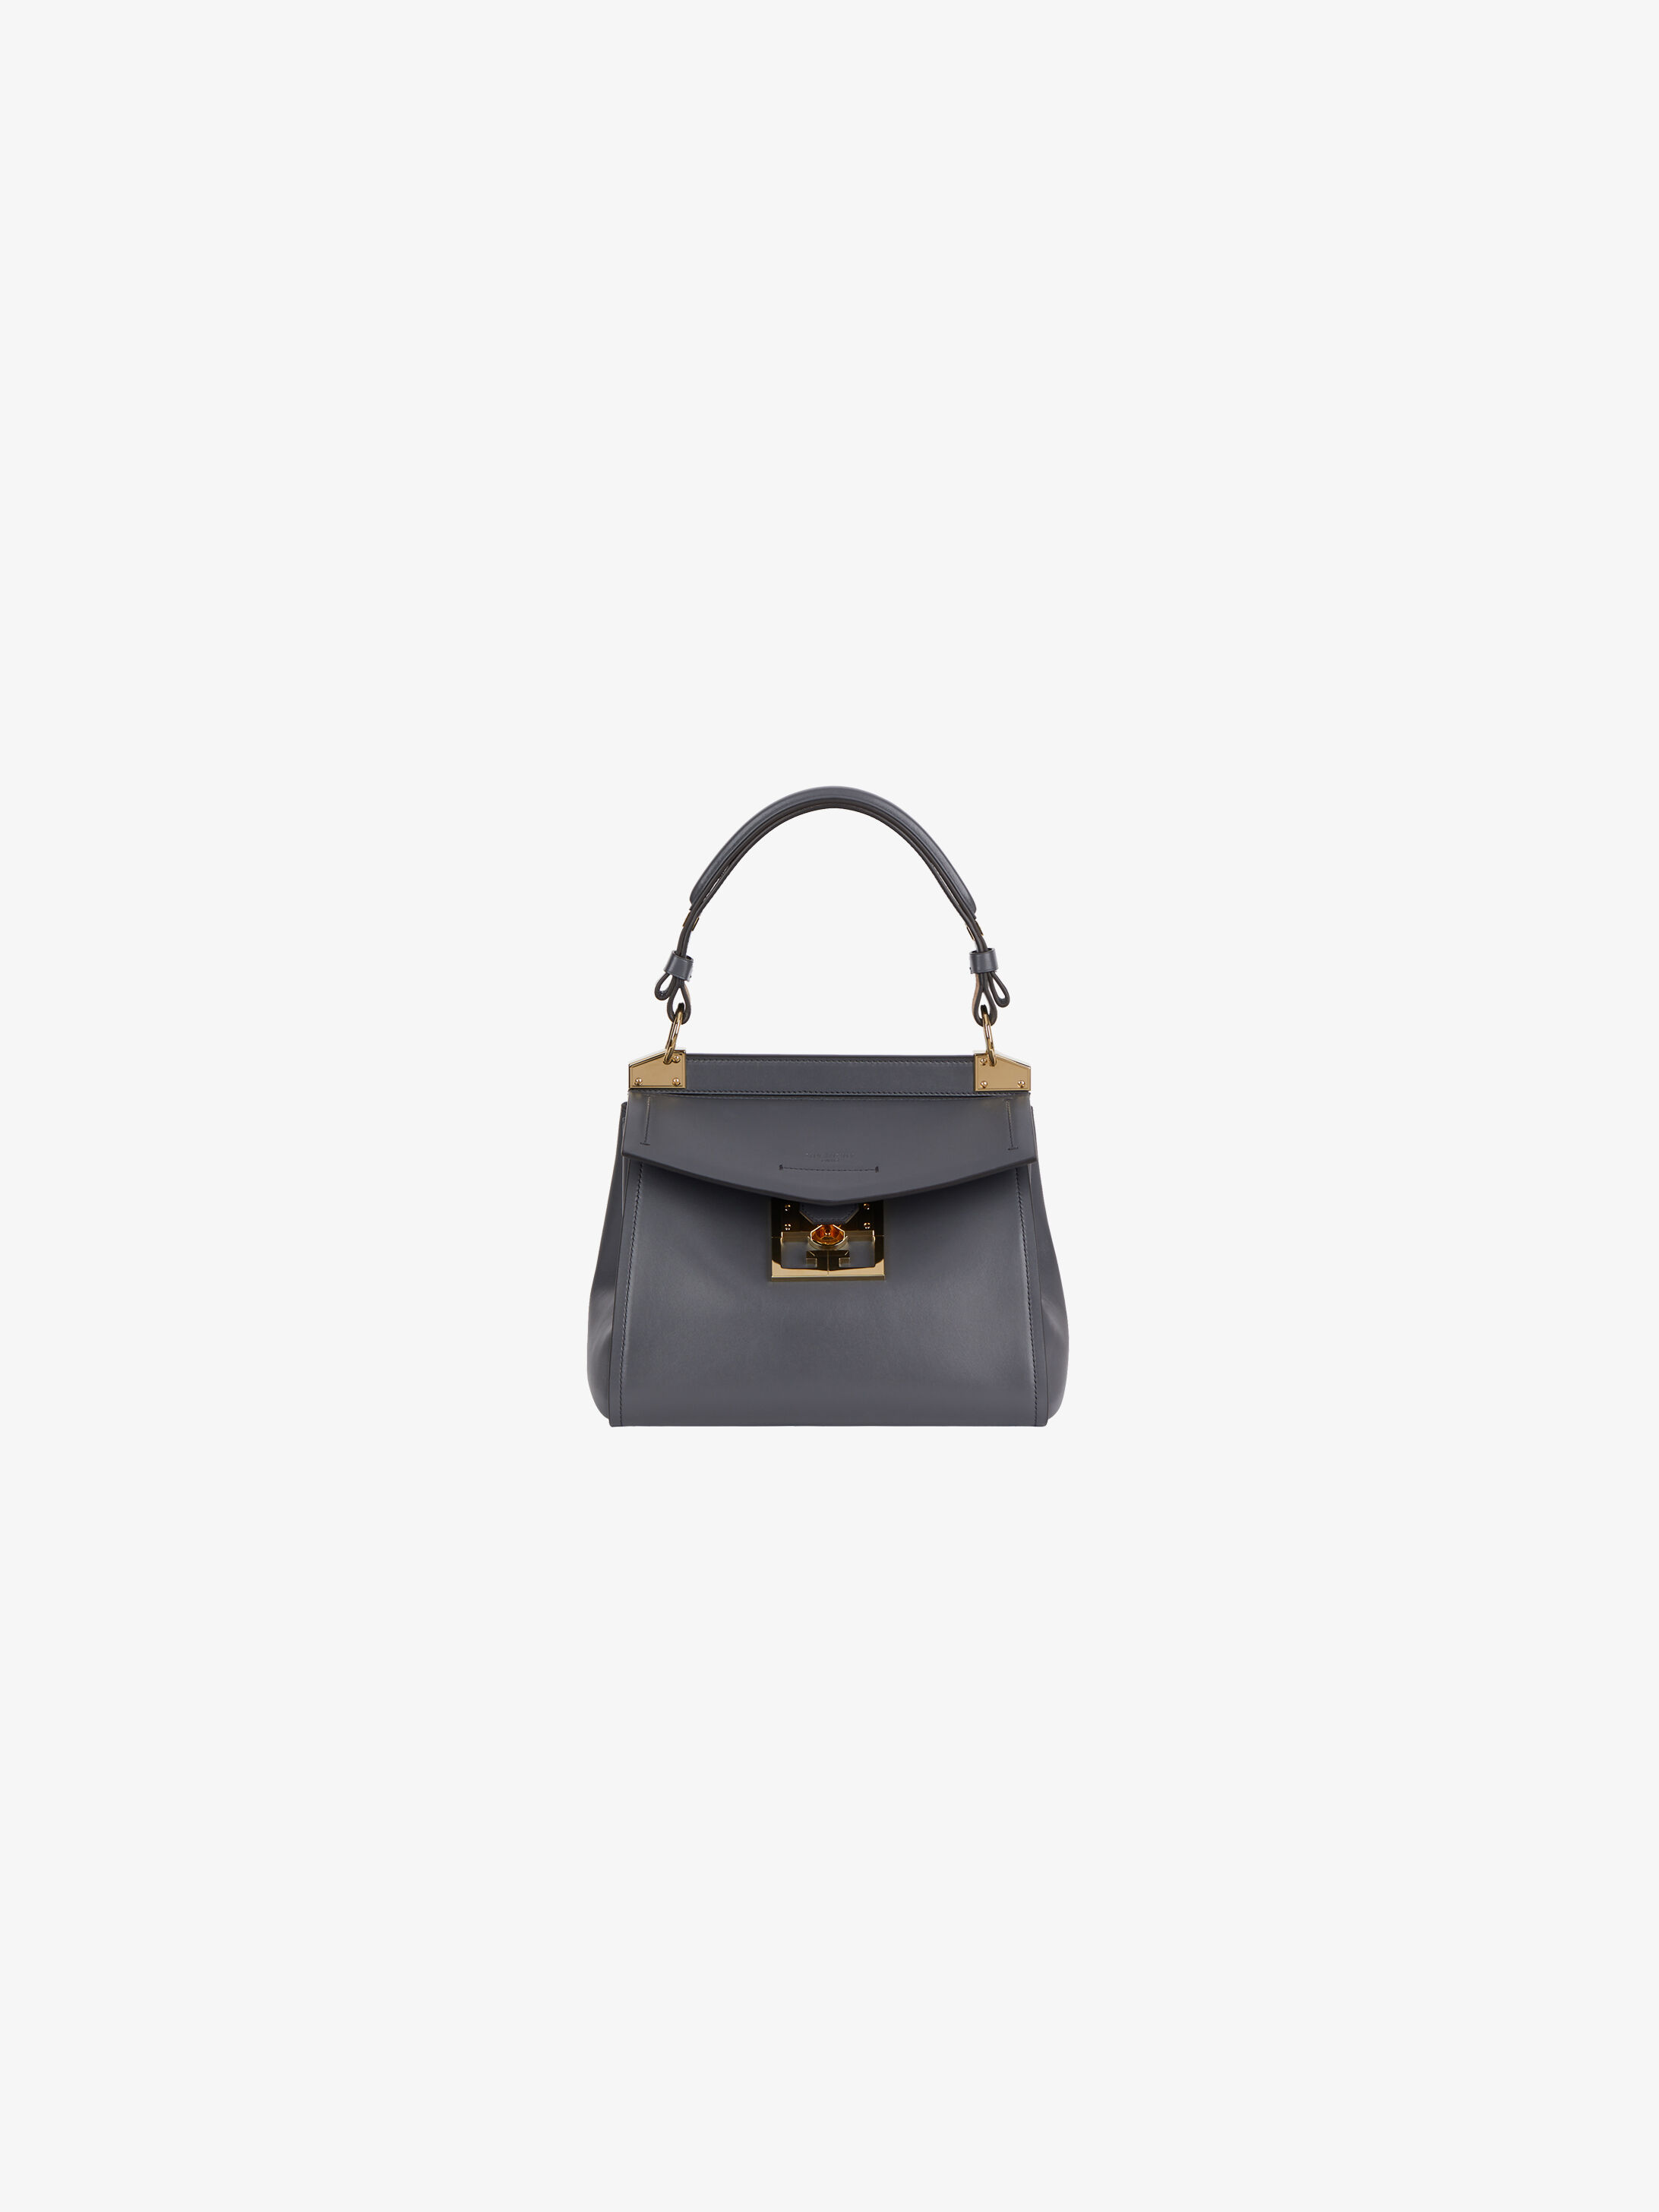 48f2e29295 Women's Handbags collection by Givenchy. | GIVENCHY Paris